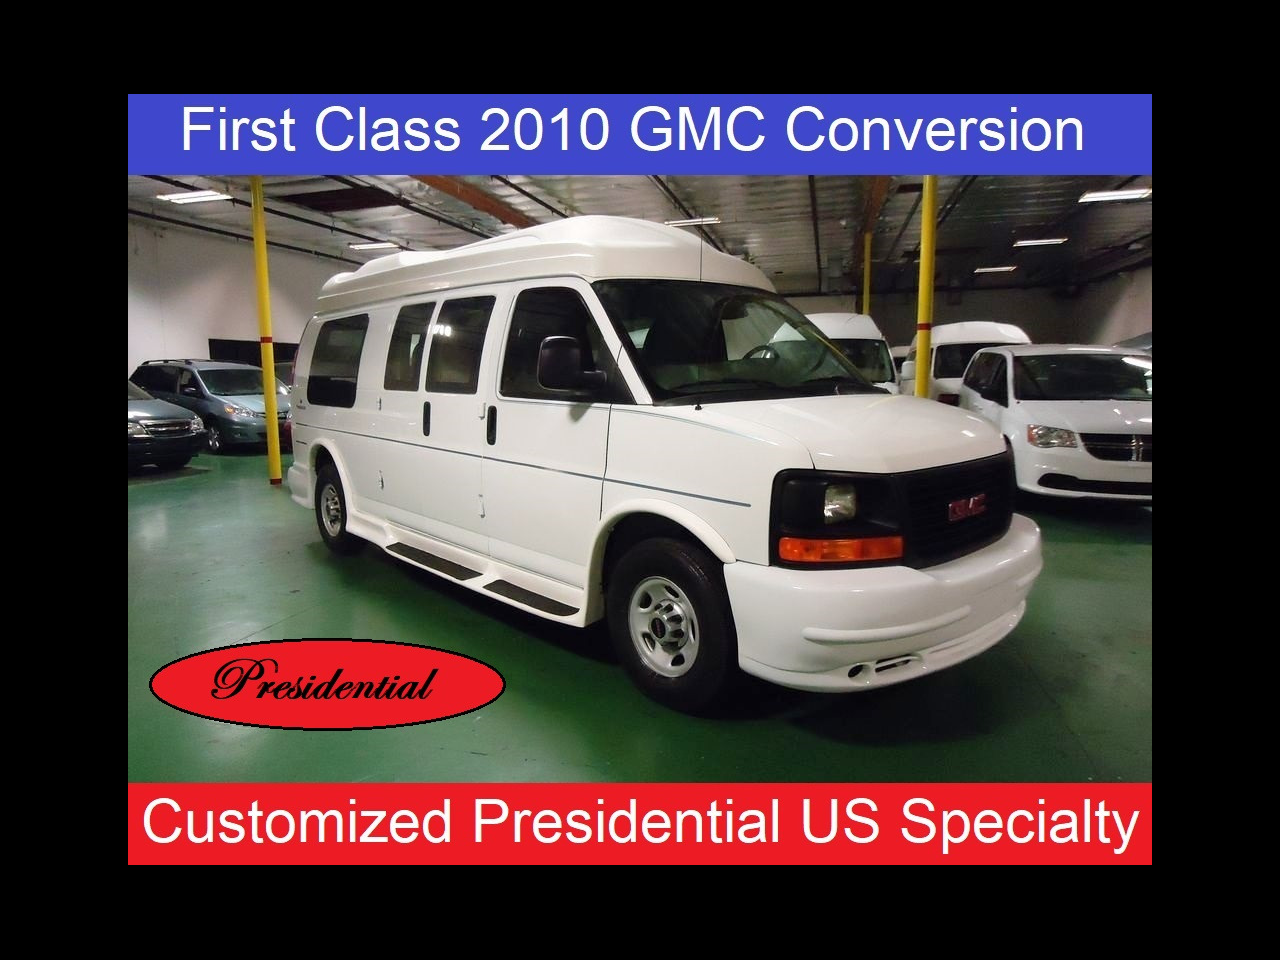 2010 GMC Savana Presidential US Specialty Custom Conversion Van